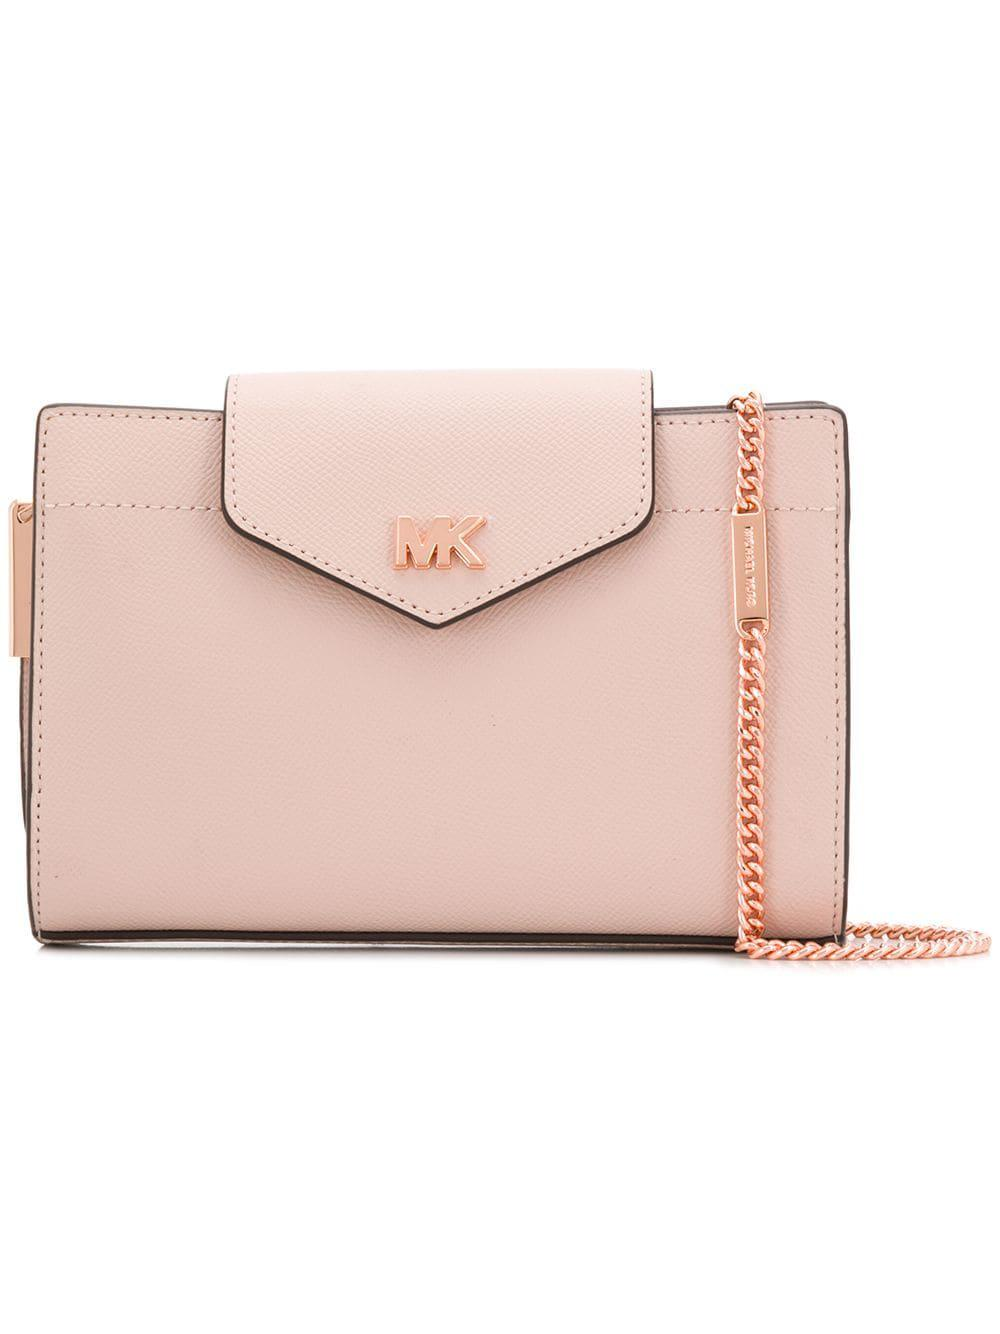 ee6a12f92c4c Lyst - MICHAEL Michael Kors Leather Crossbody Bag in Pink - Save 37%